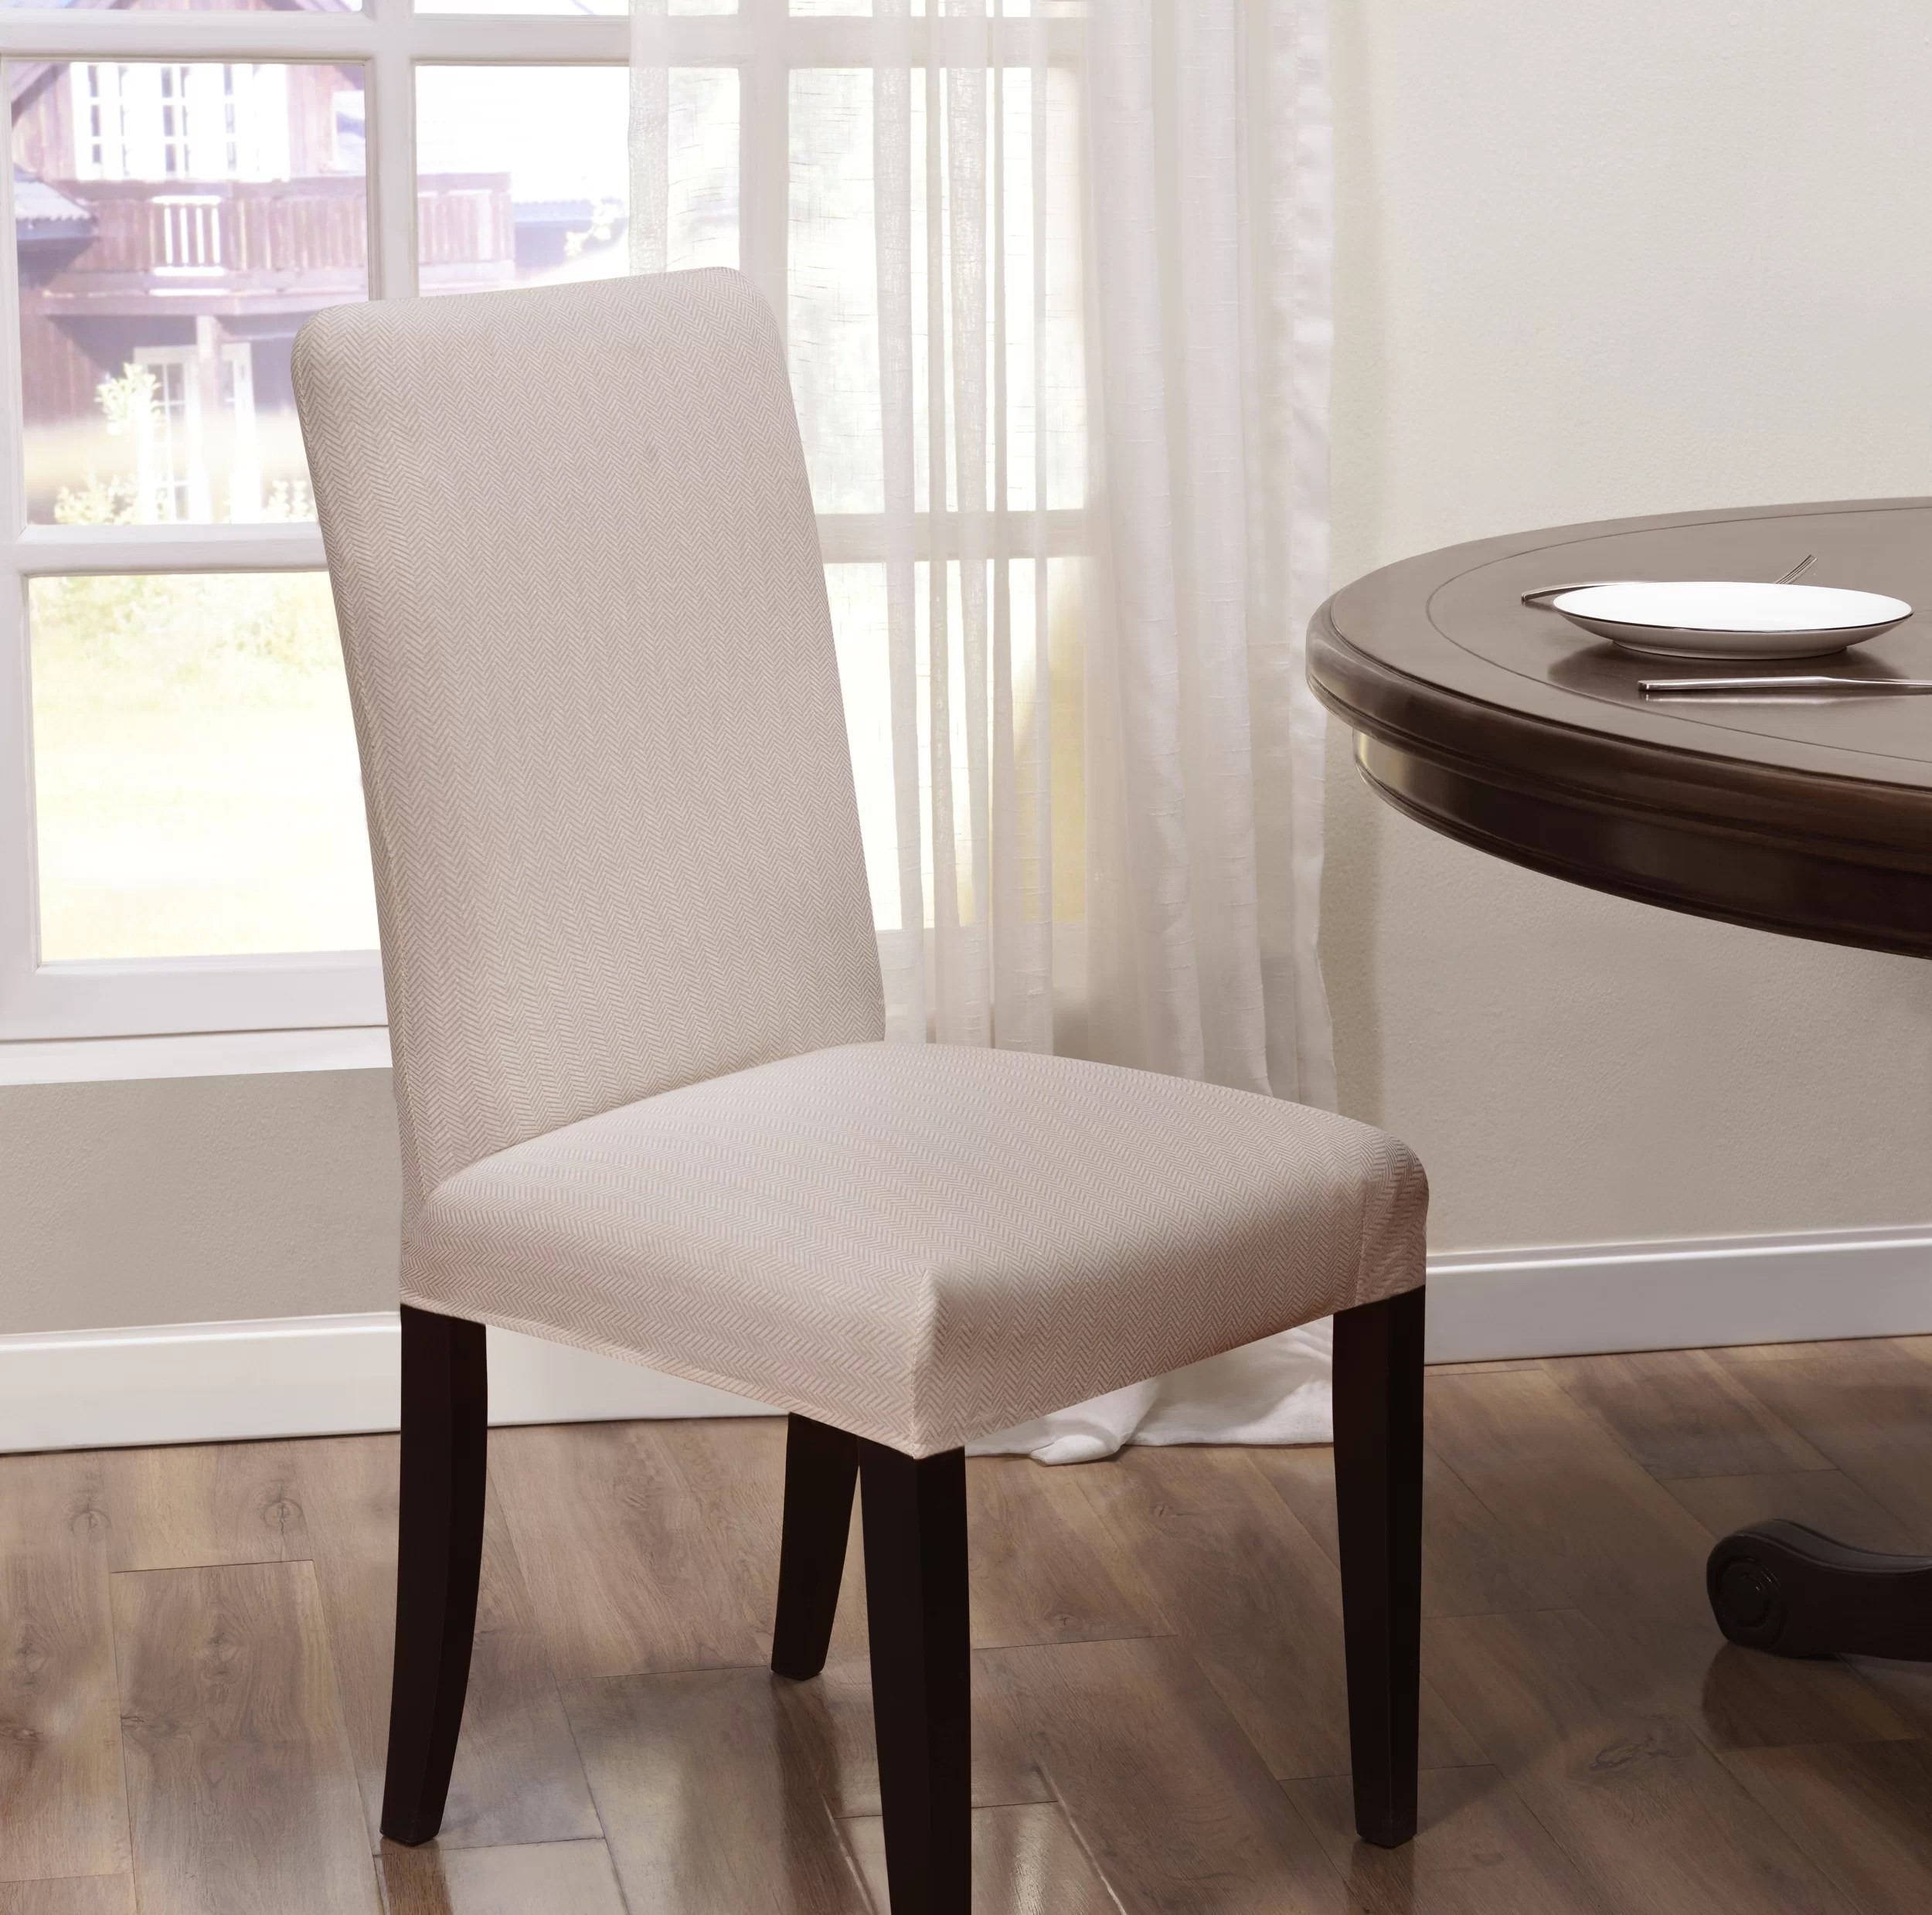 Dining Chair Slipcover Box Cushion Dining Chair Slipcover